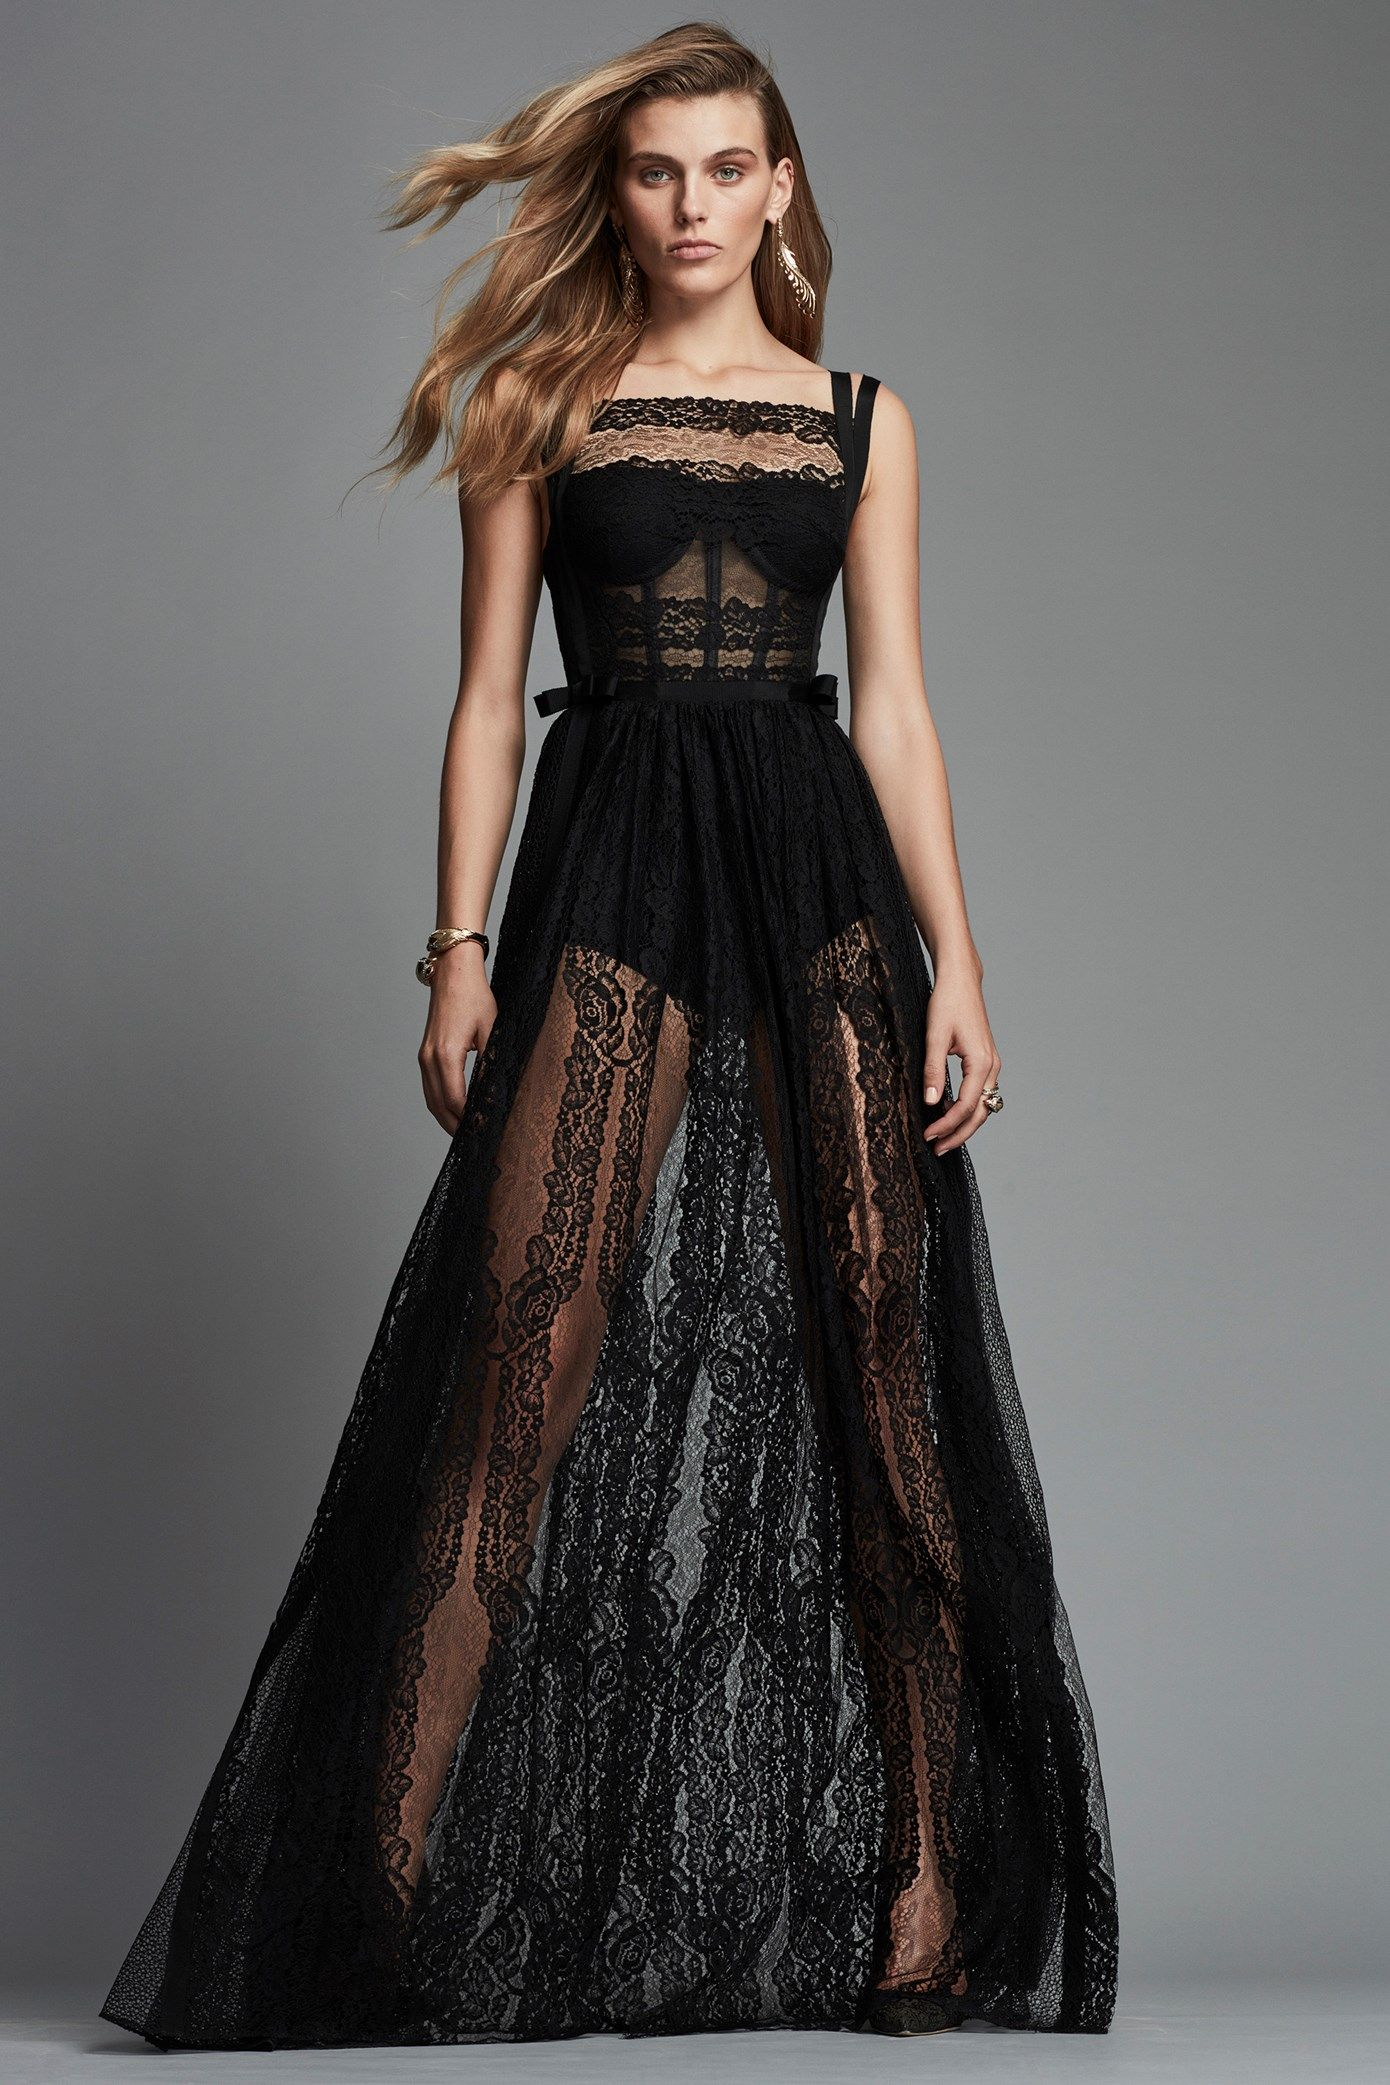 Zuhair murad spring readytowear collection great gowns